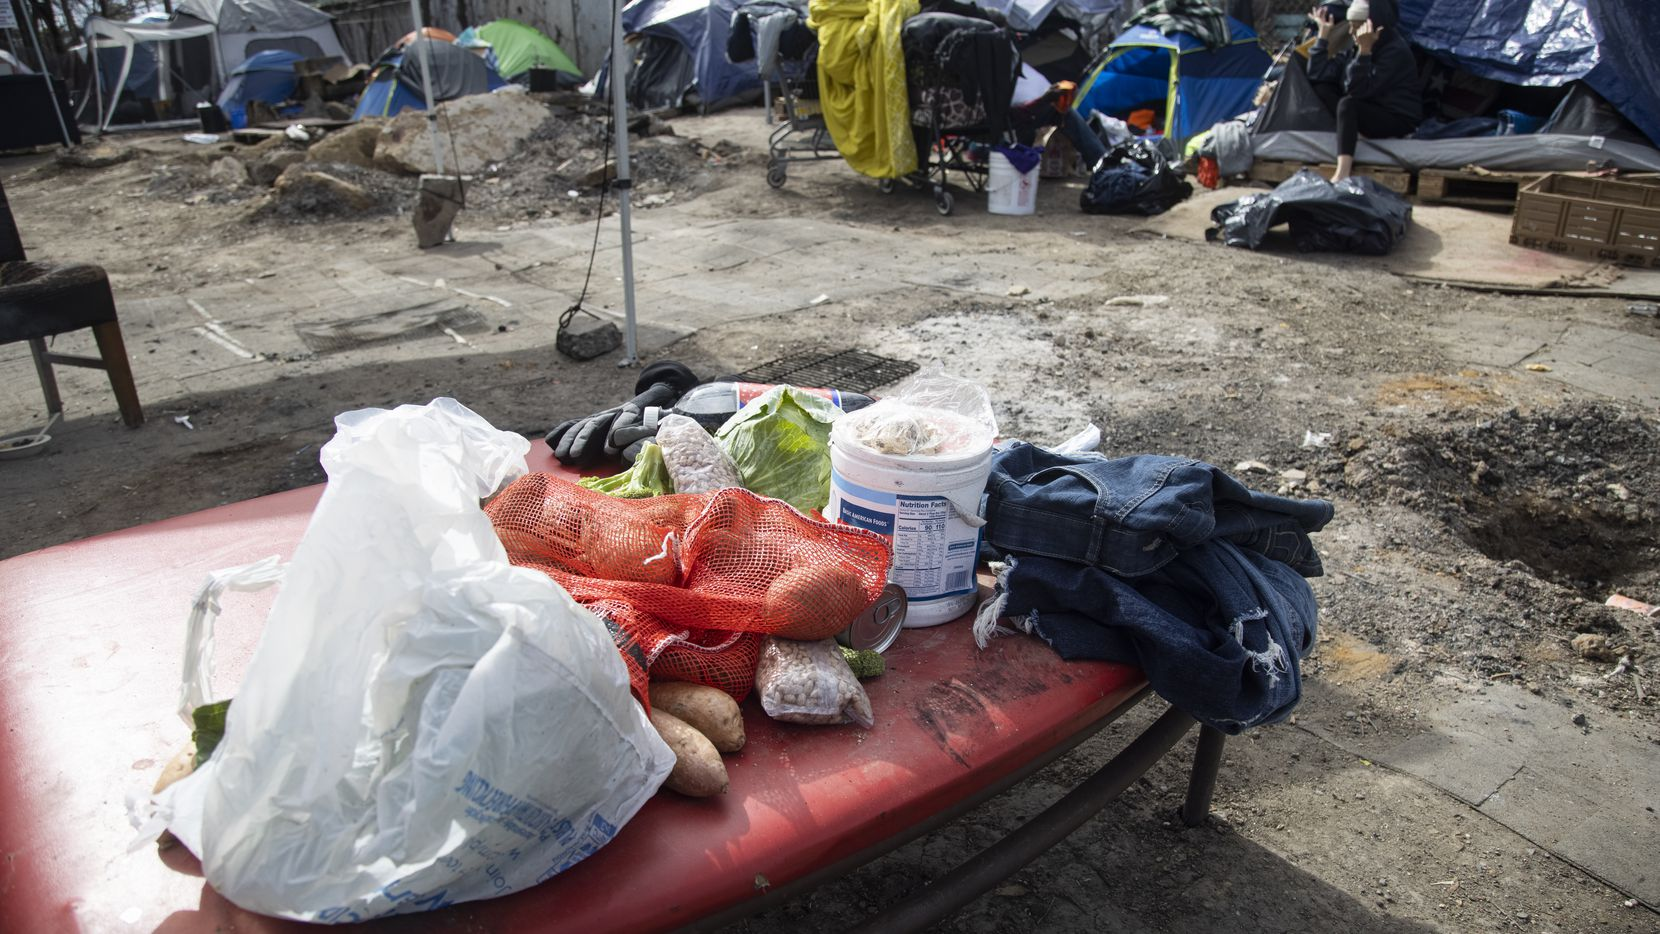 Food at Camp Rhonda, a homeless encampment located on a lot along Interstate 45, on Feb. 5, 2021 in South Dallas. Last week, city officials sent a notice to the owner of the property, Johnny Aguinaga, stating that the lot needed to be empty by Feb. 6.